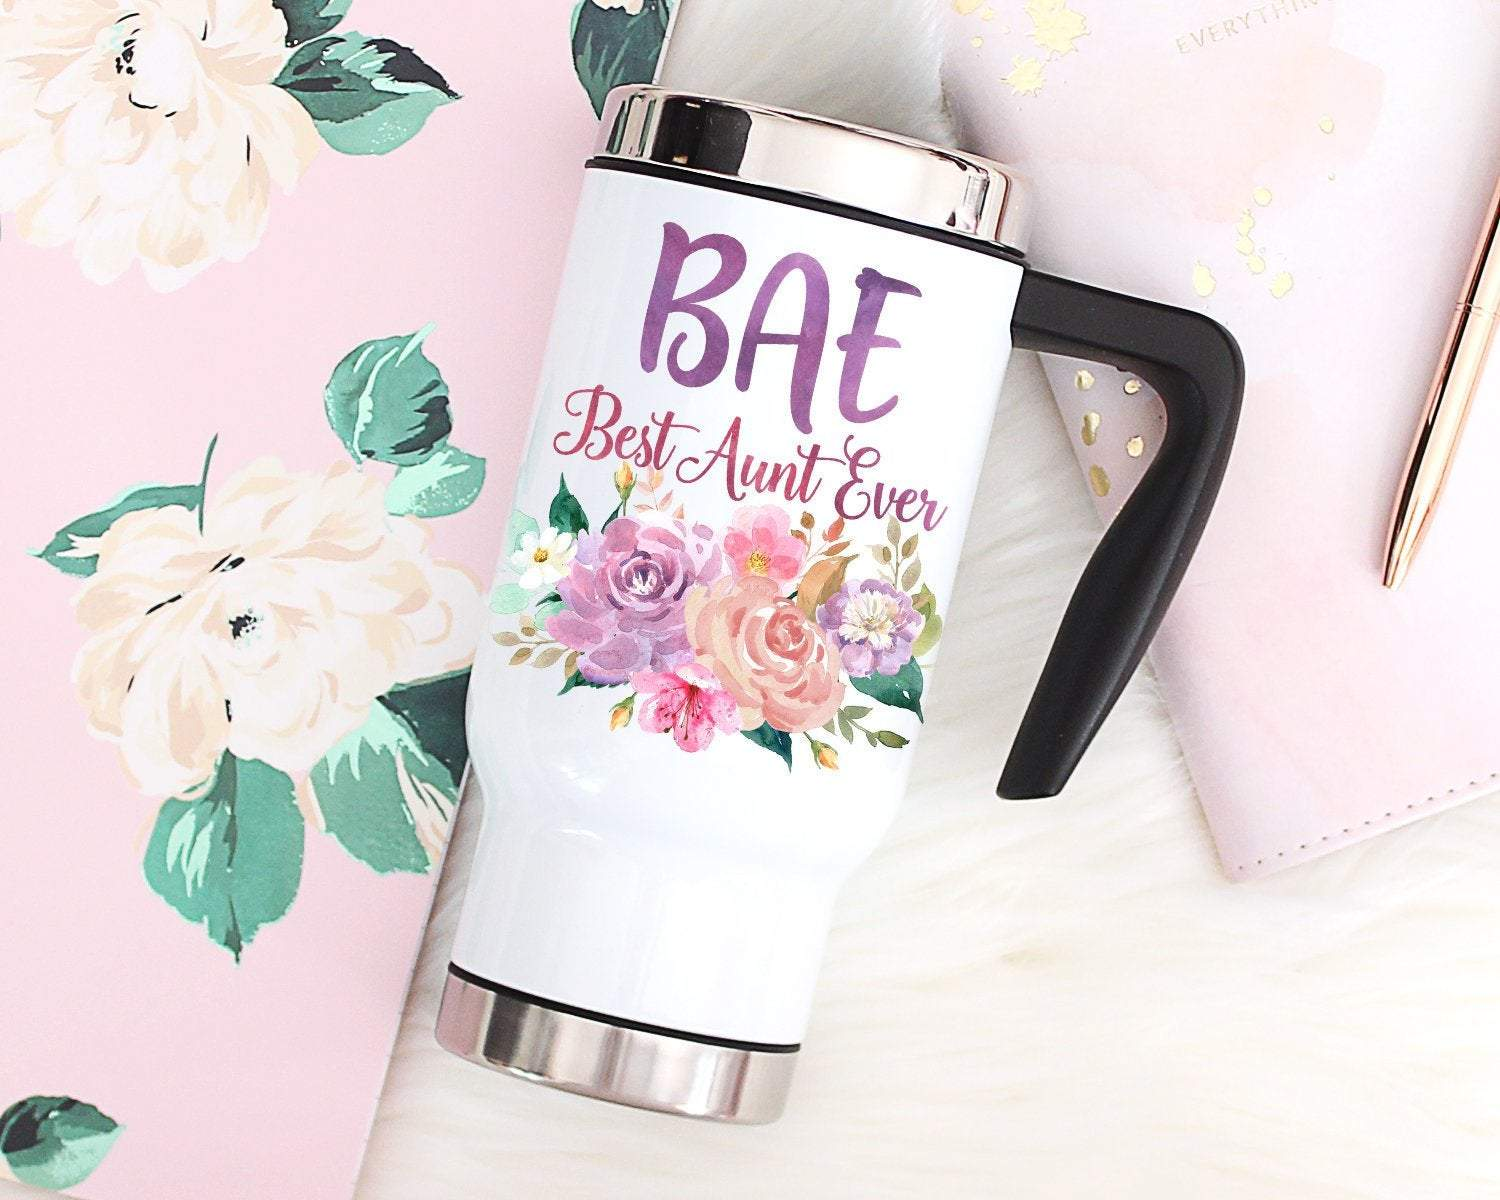 New Aunt Gift BAE Best Aunt Ever Travel Mug